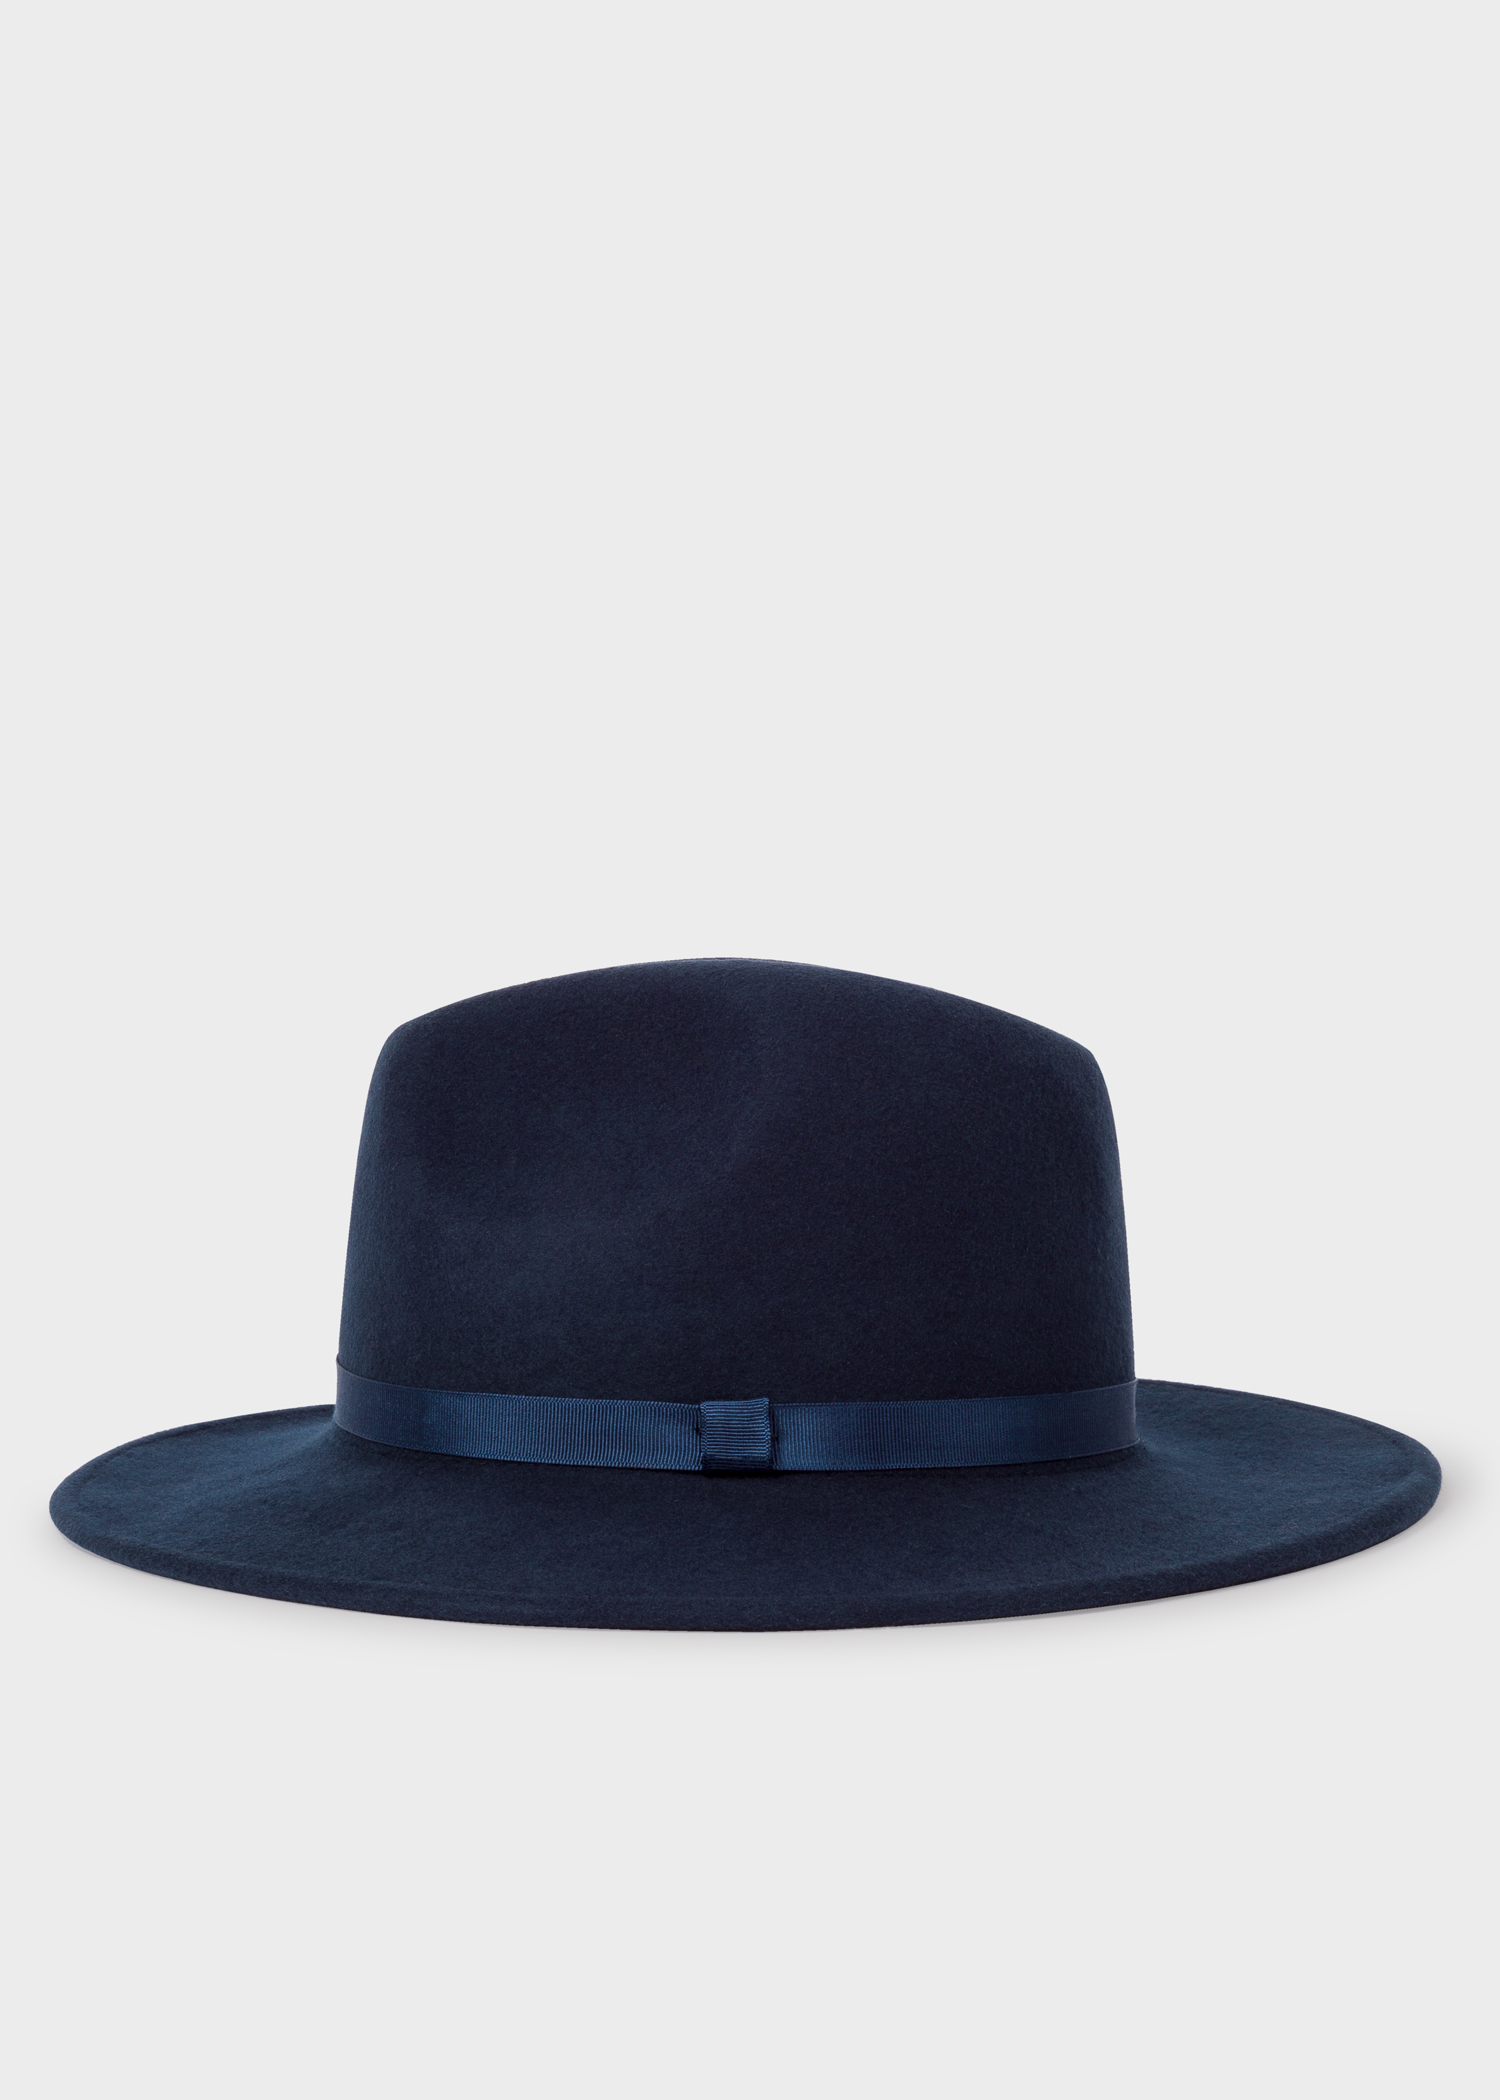 077eb922402452 Front View - Women's Navy Wool Felt Fedora Hat Paul Smith